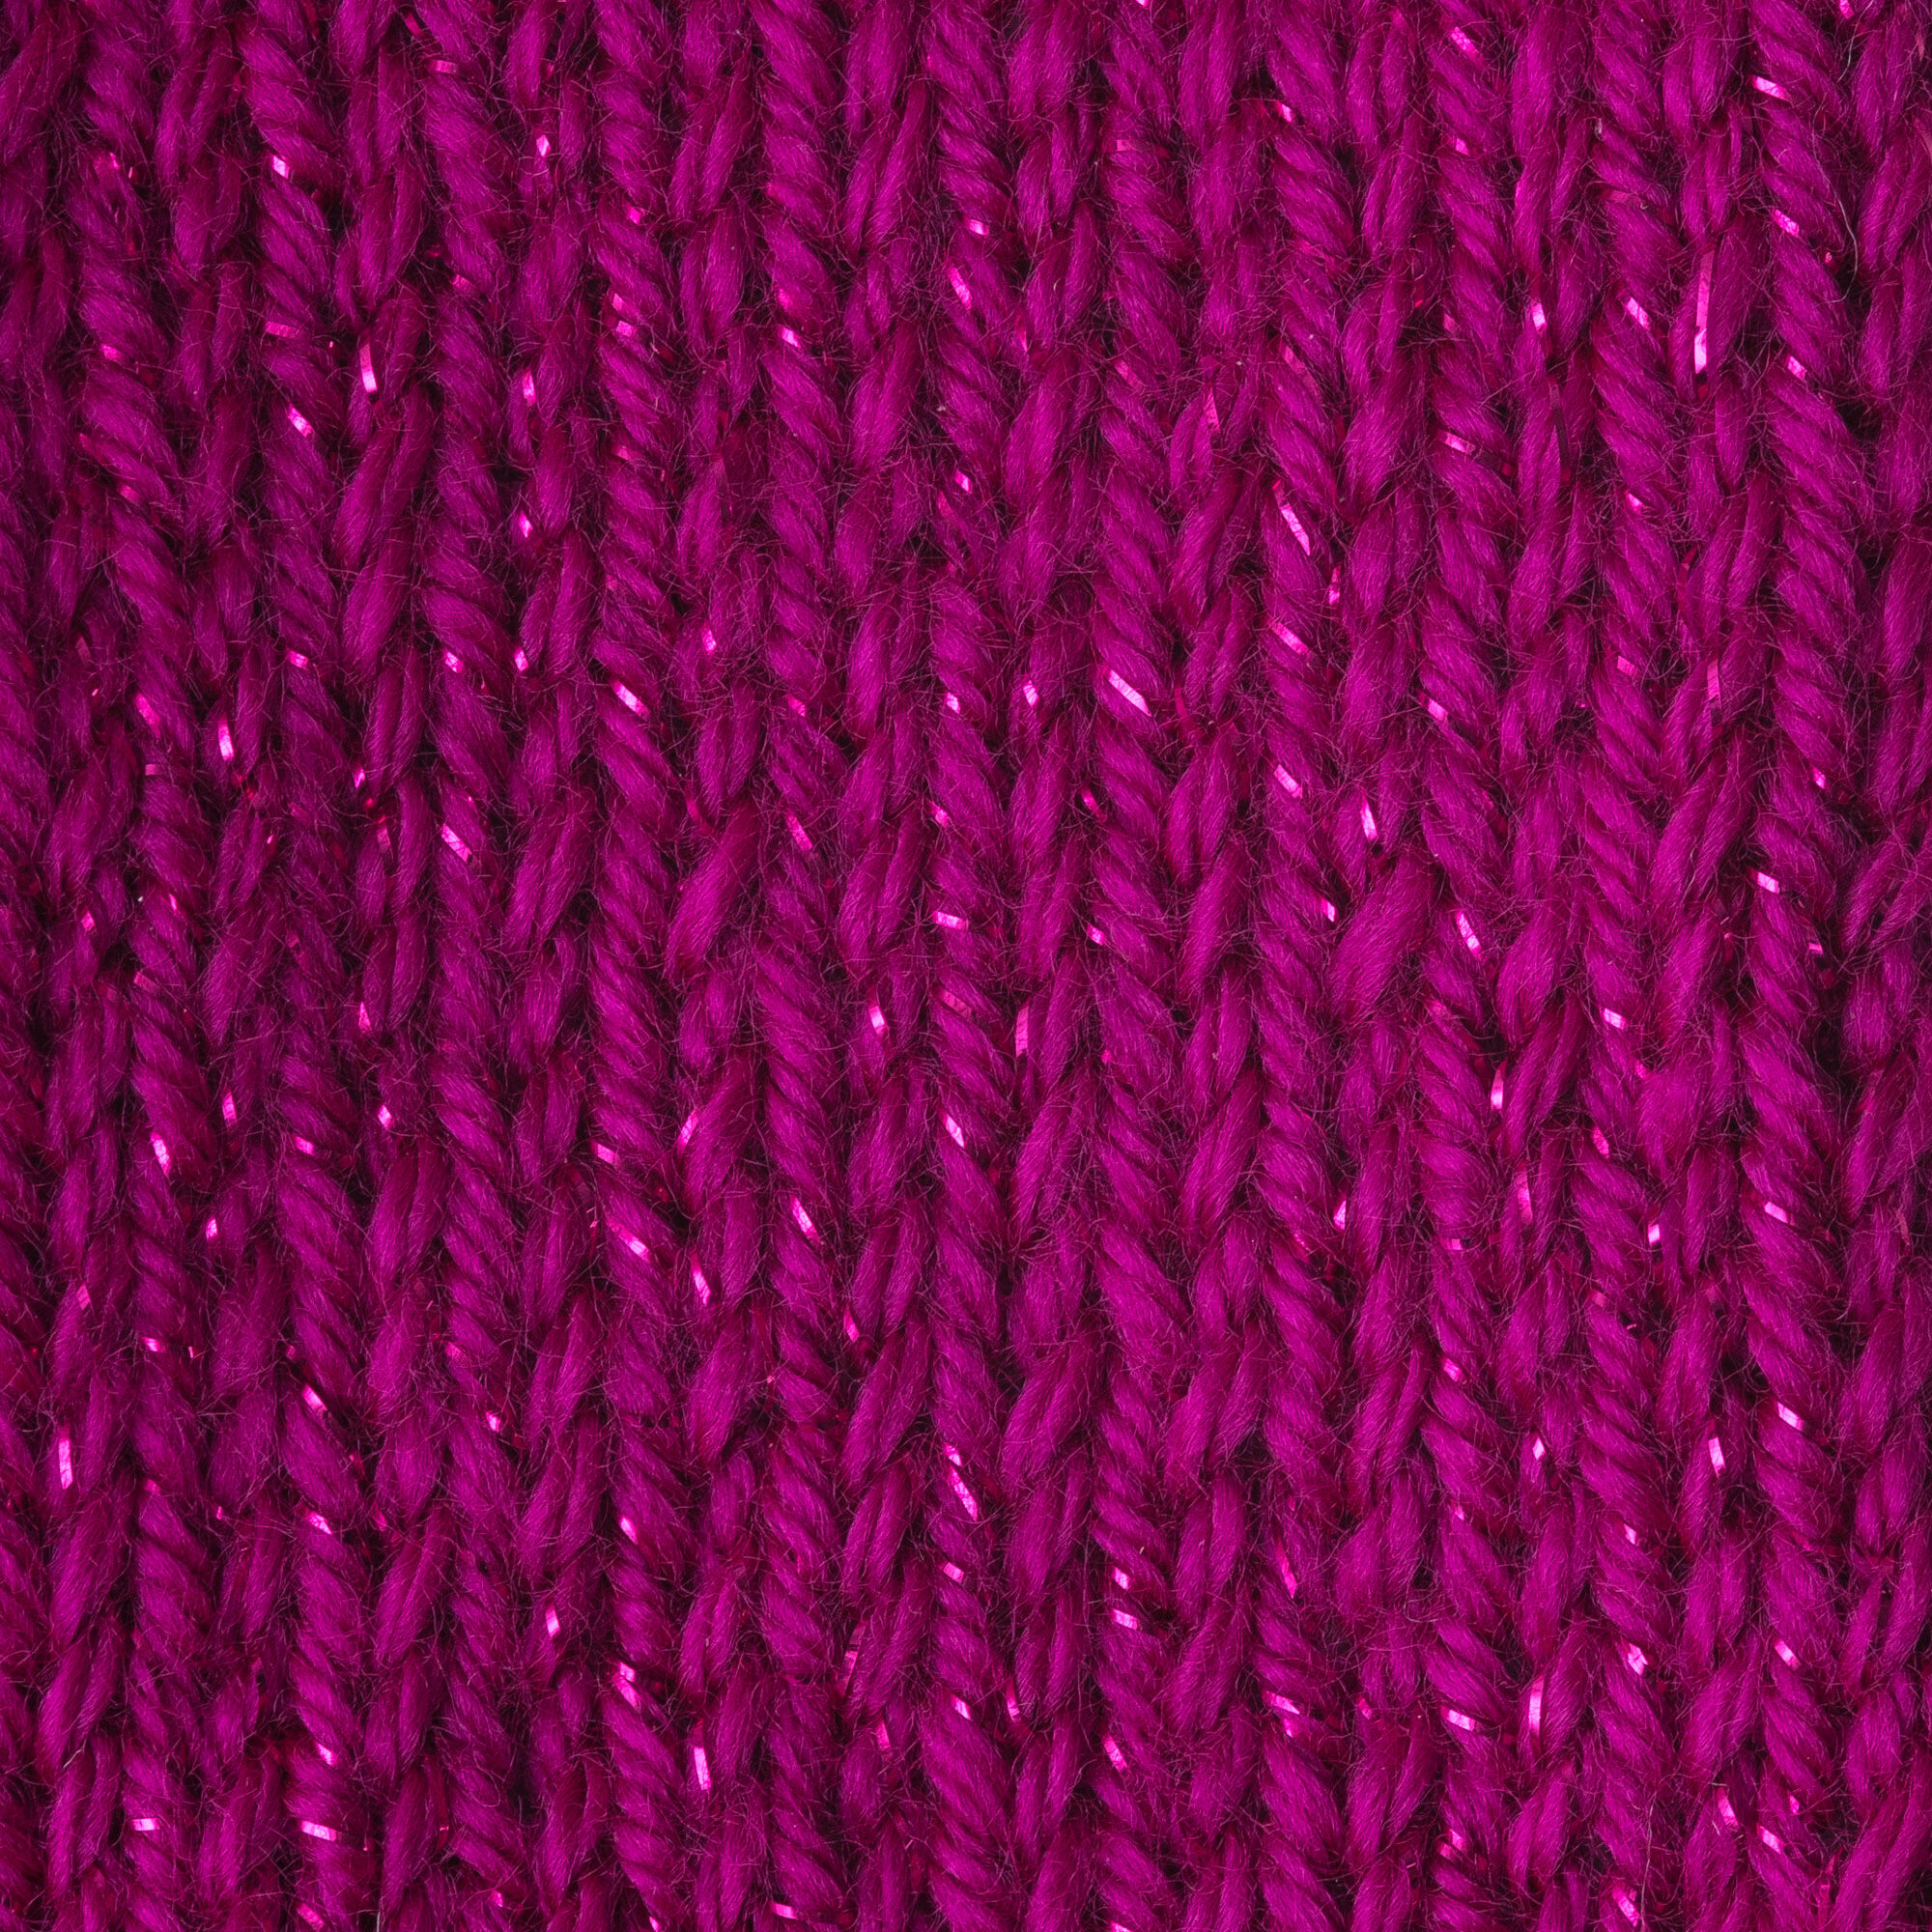 CARON Simply Soft Party Fil-Printemps Sparkle